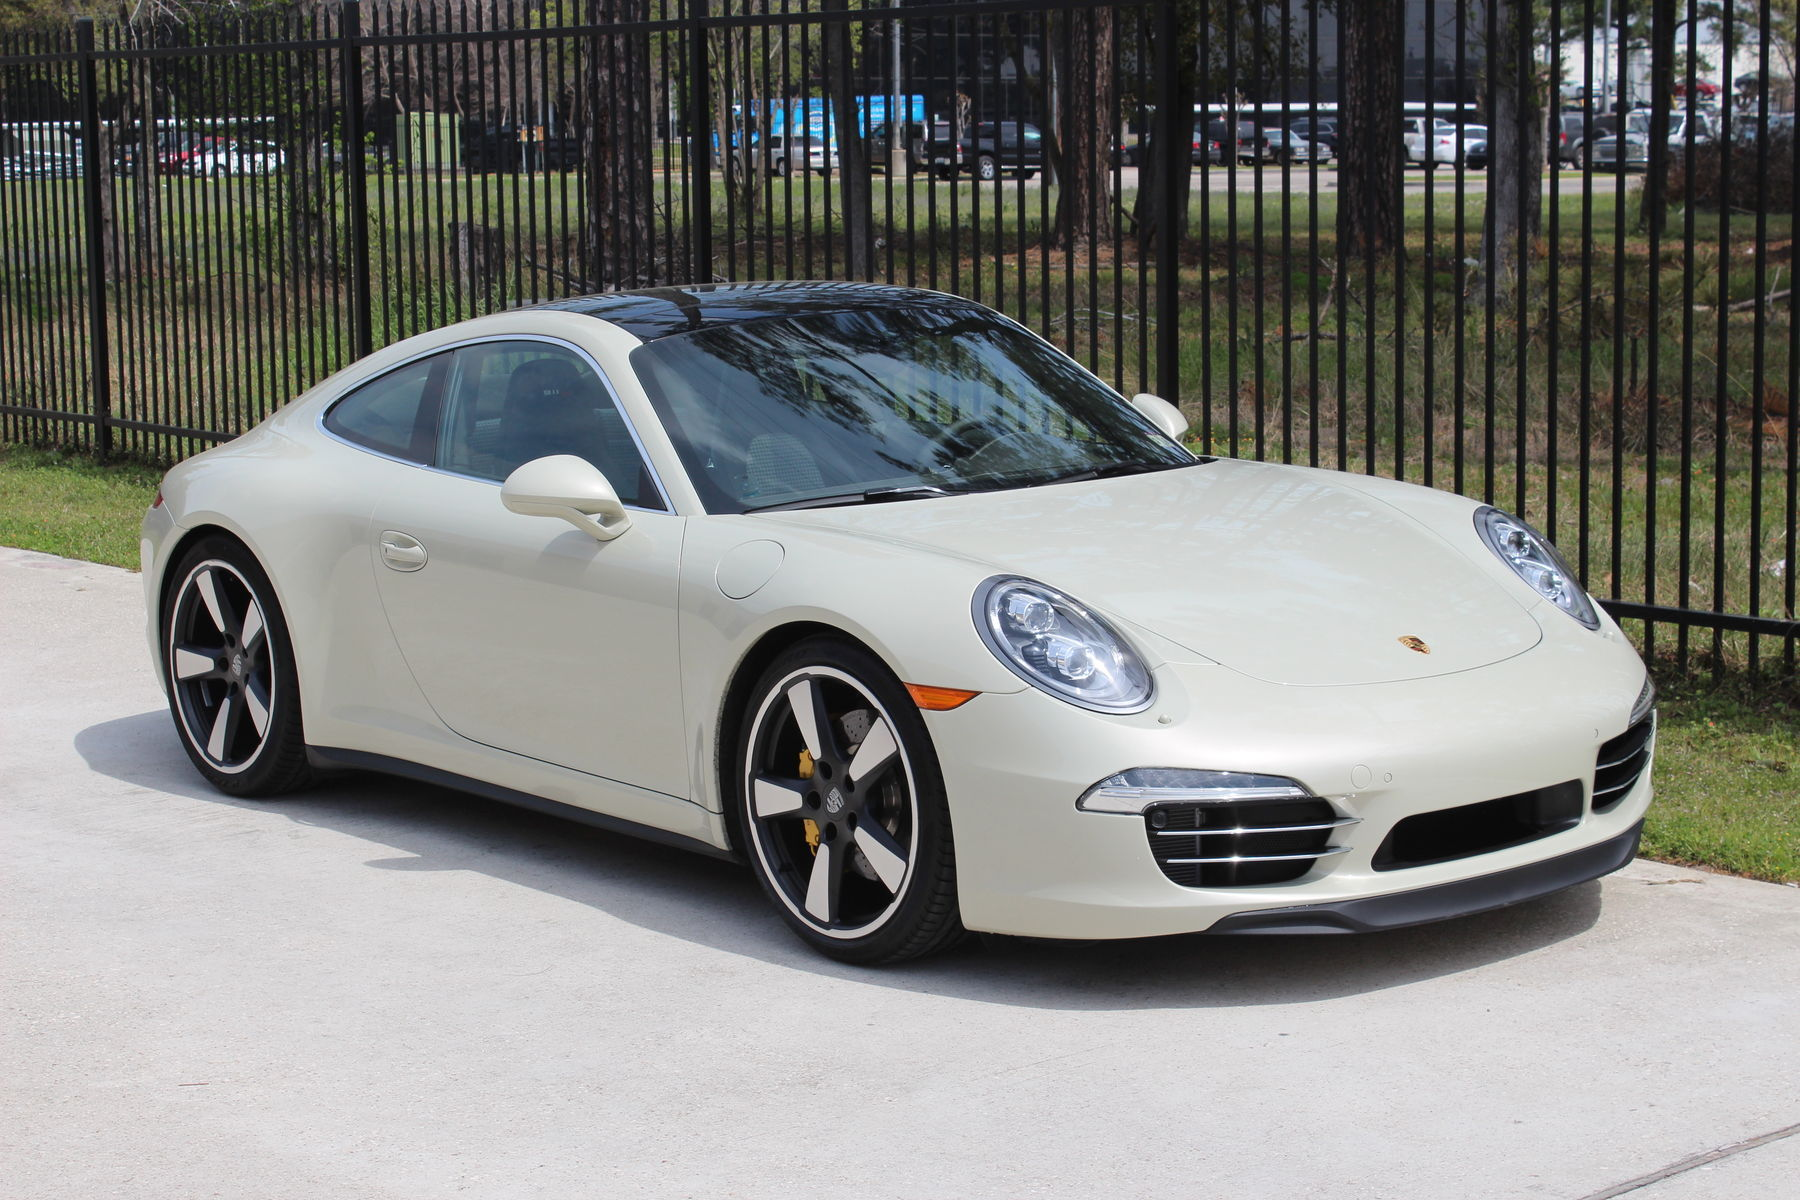 Porsche 911 | Porsche 911 50th Edition with XPEL ULTIMATE protection